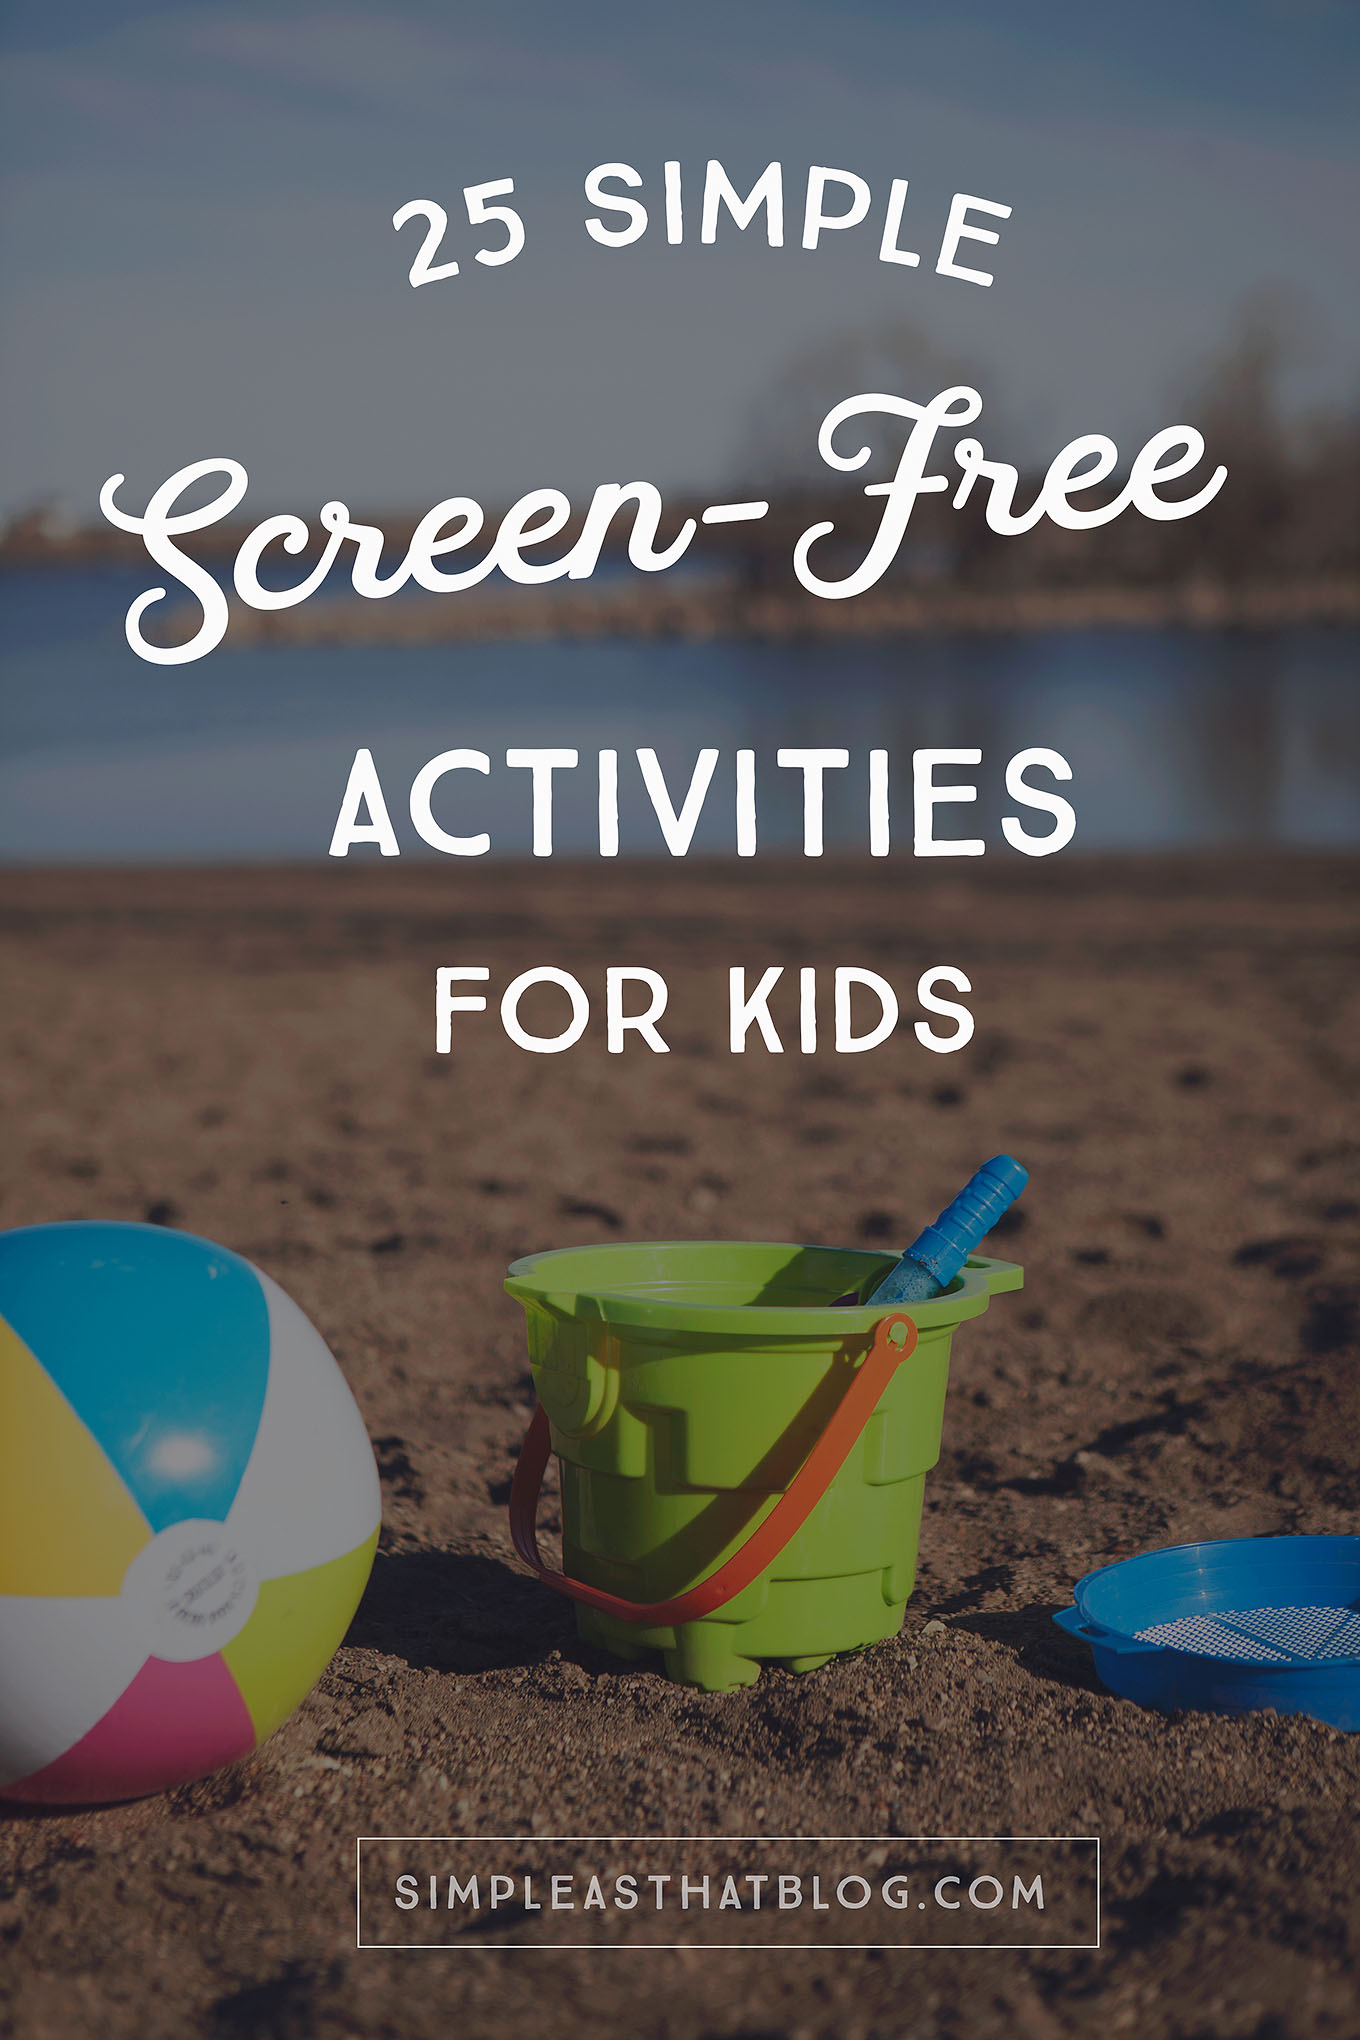 Summer is the perfect time to encourage kids to stretch their creativity, get outside and explore, and use their imaginations. Absolutely no screens required! Here are 25 simple screen-free activities to keep kids entertained.